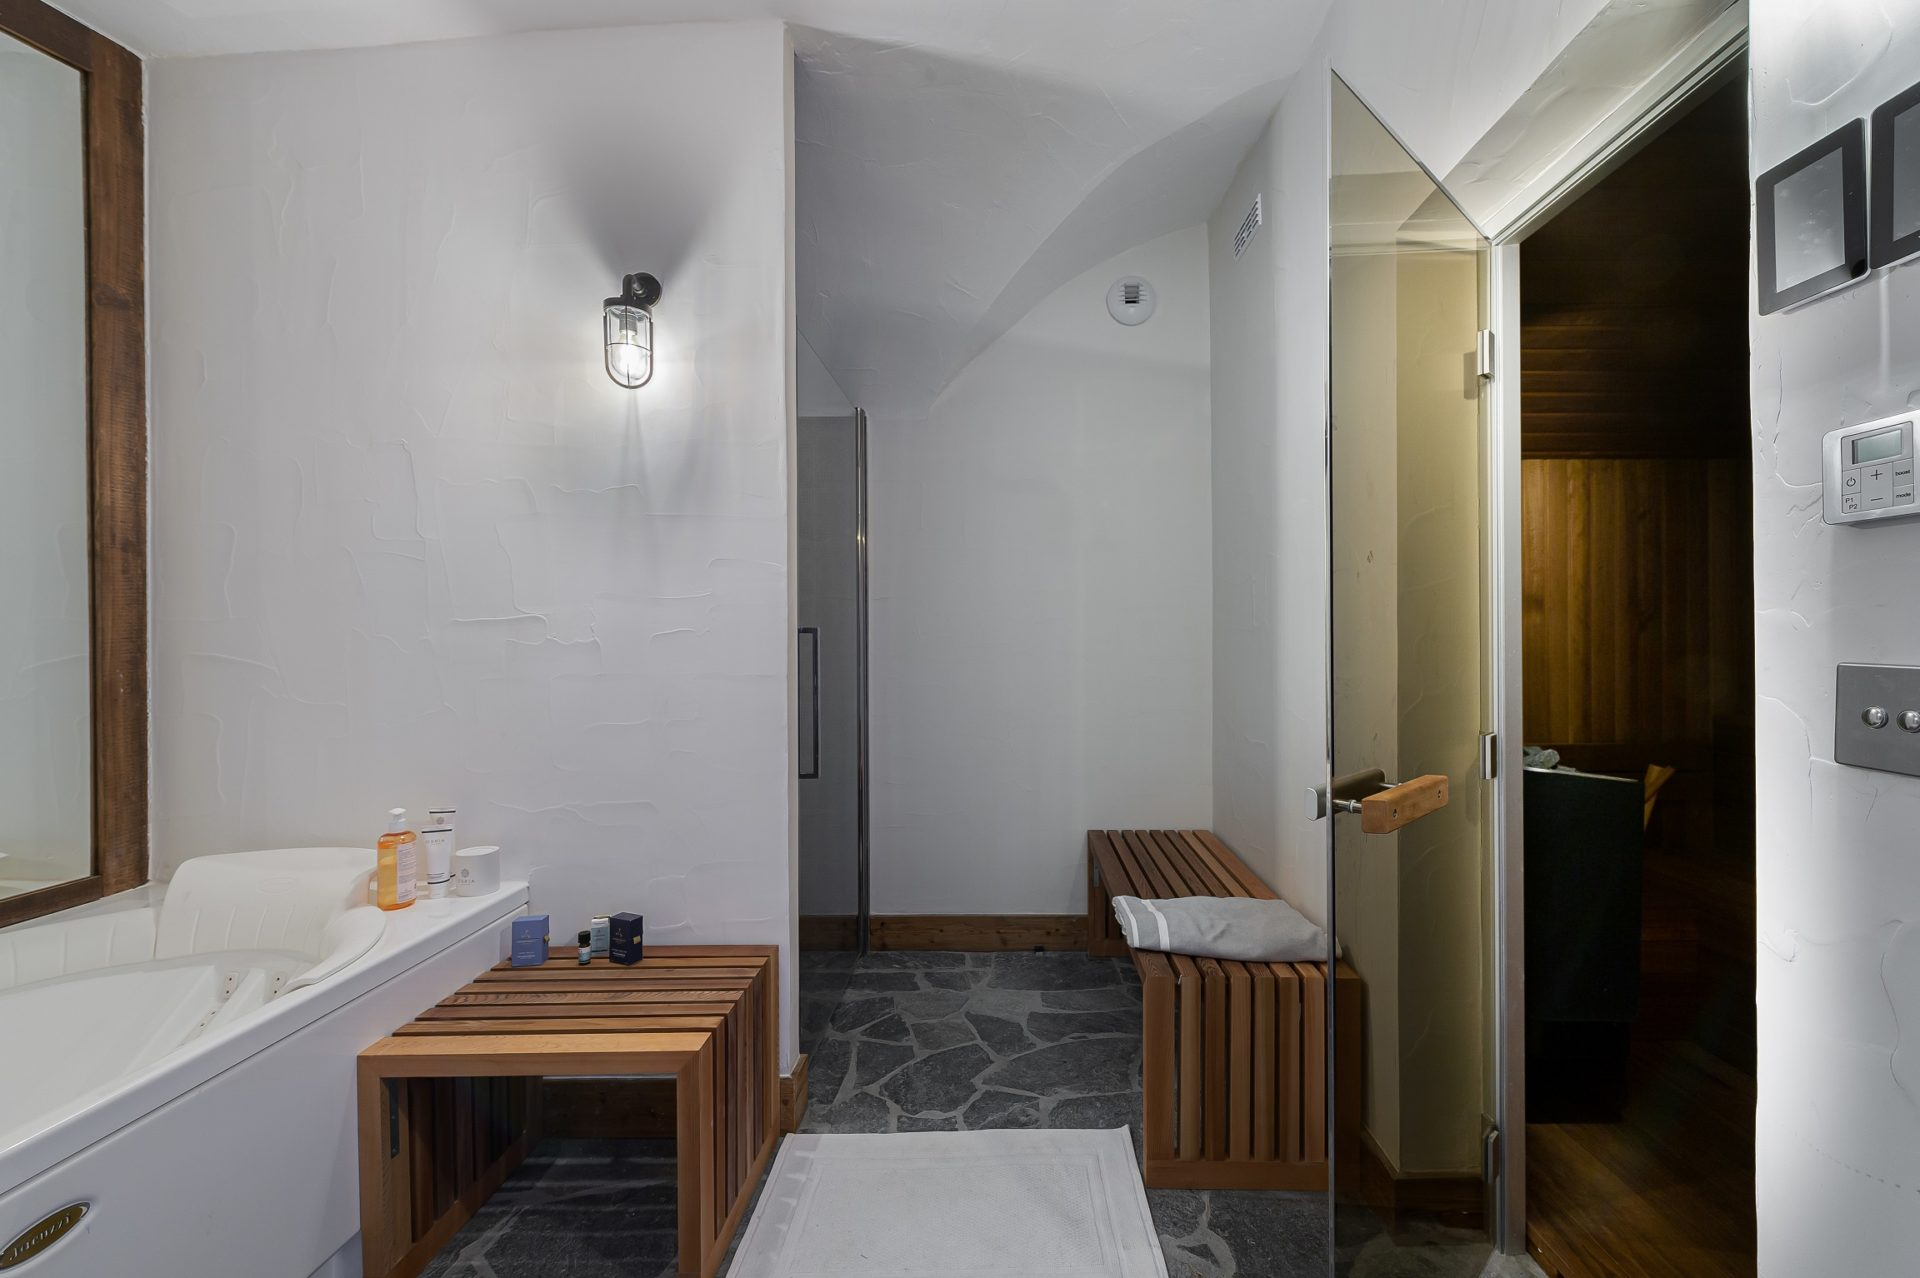 L'Epicerie / Appartement 1 / Spa / Saint Martin de Belleville, Savoie